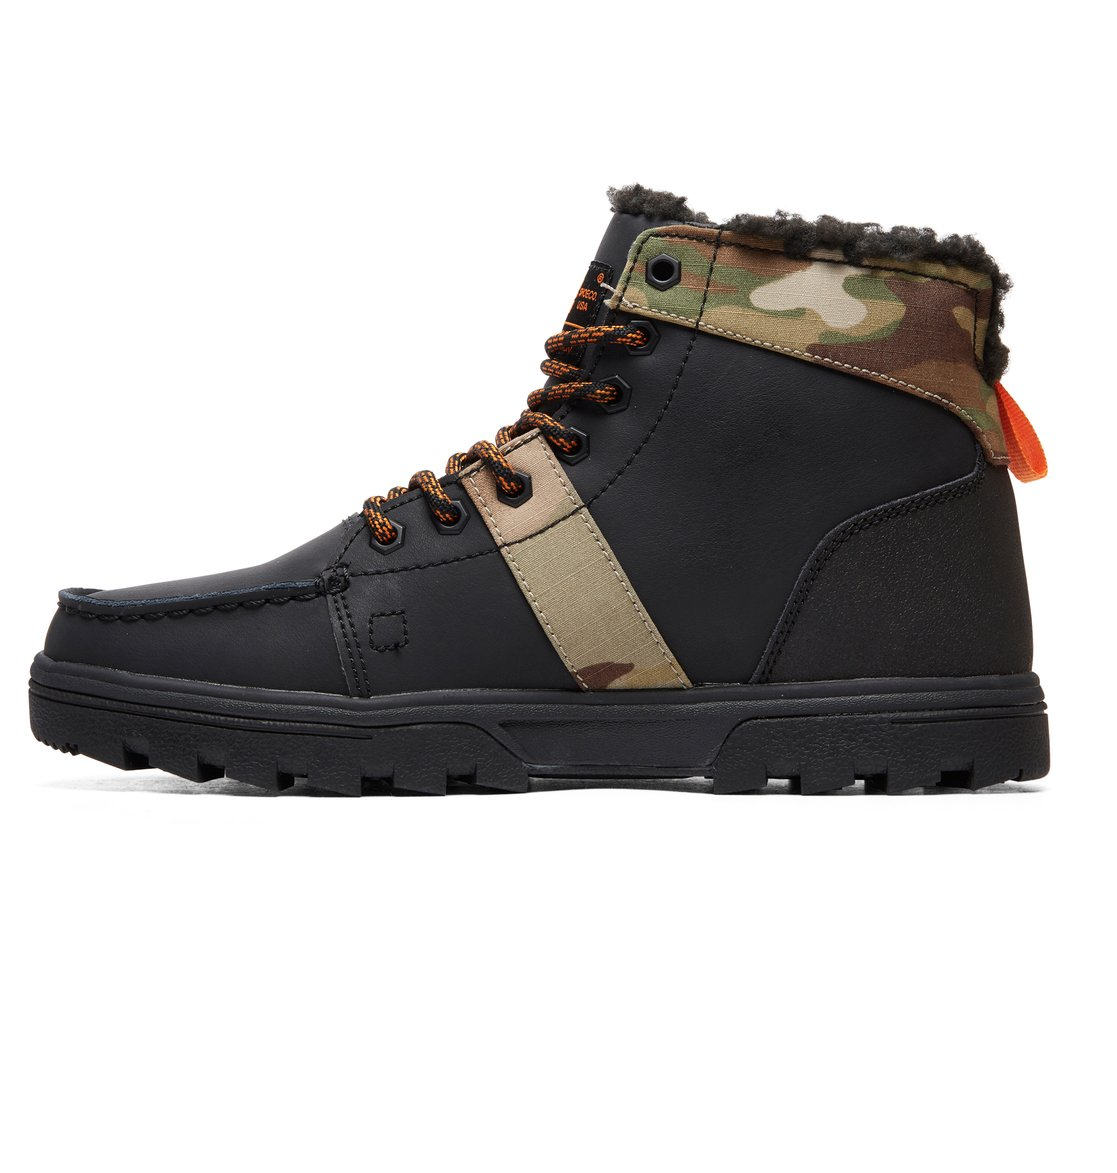 Woodland Lace-Up Boots 303241 | DC Shoes